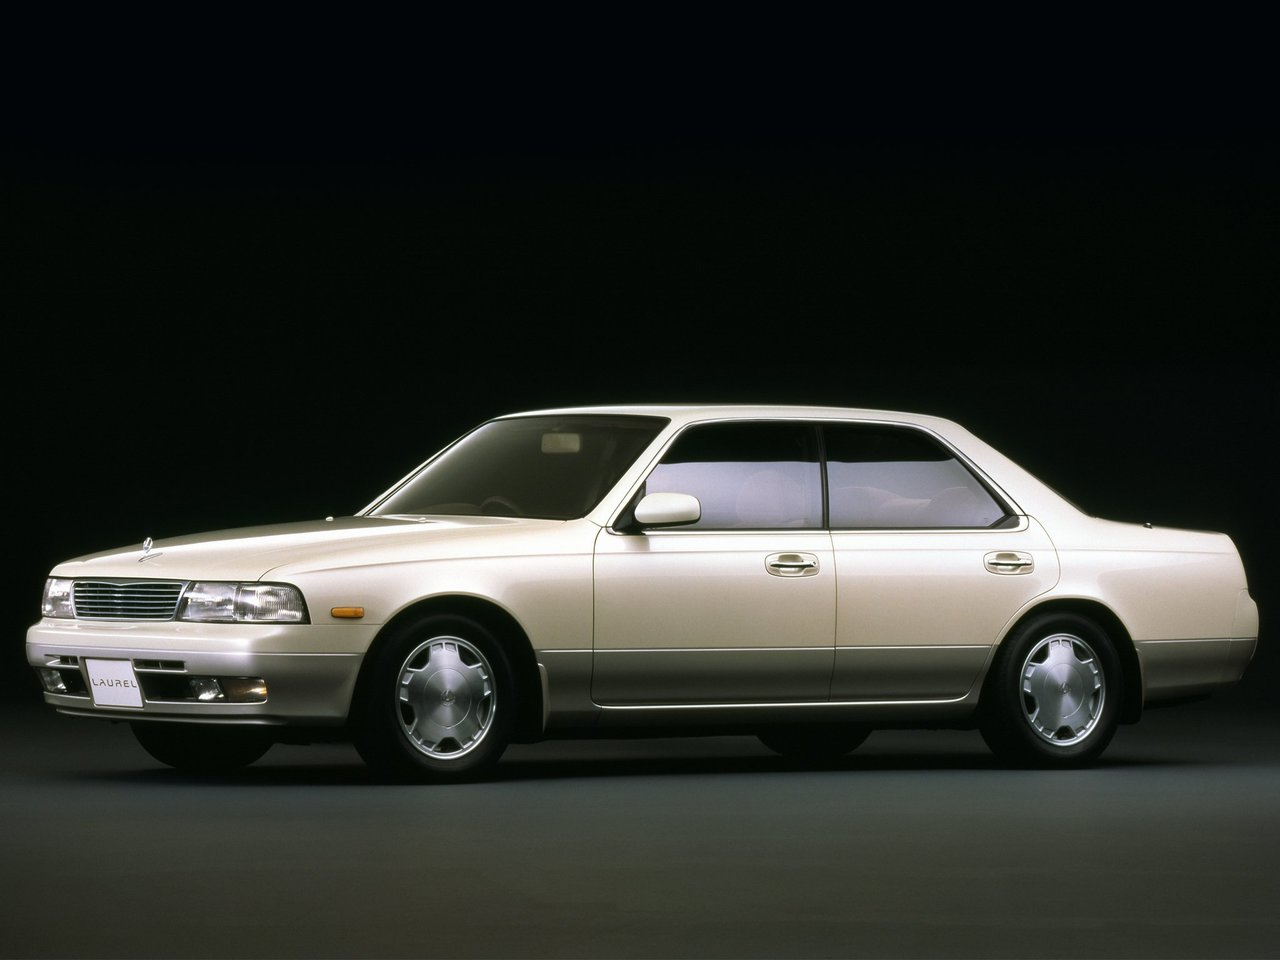 Nissan Laurel VII